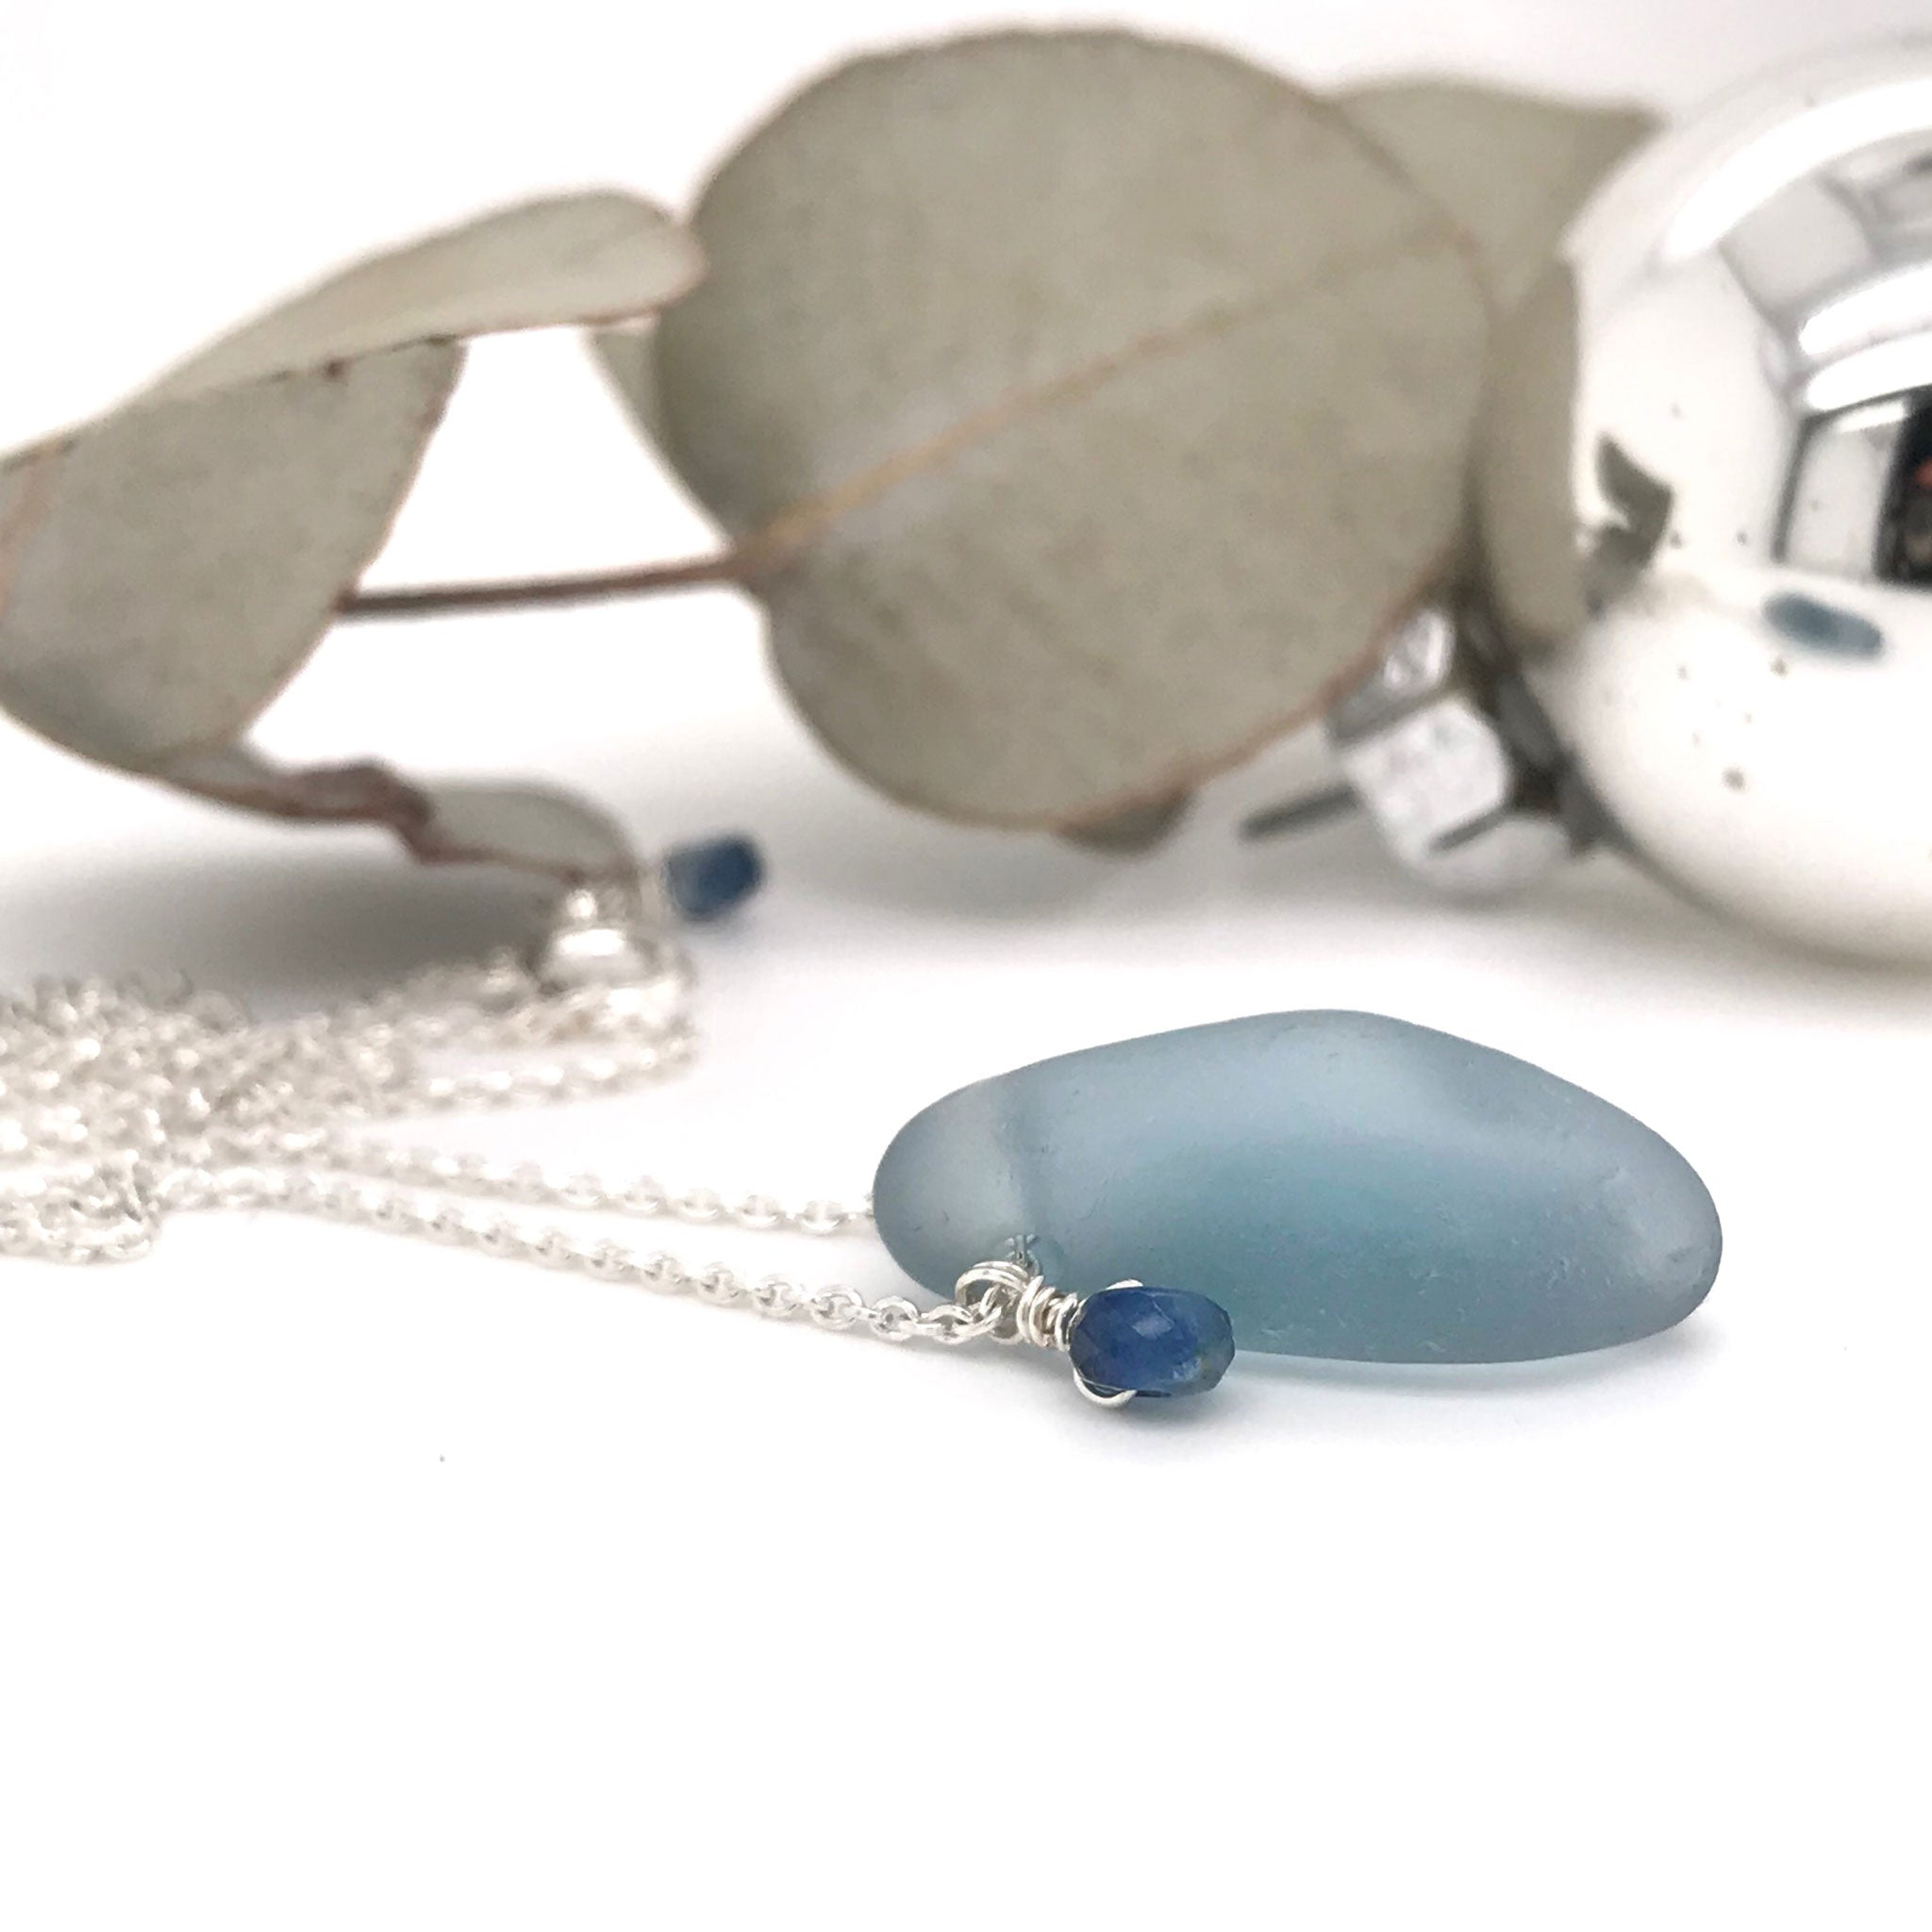 French grey seaglass necklace